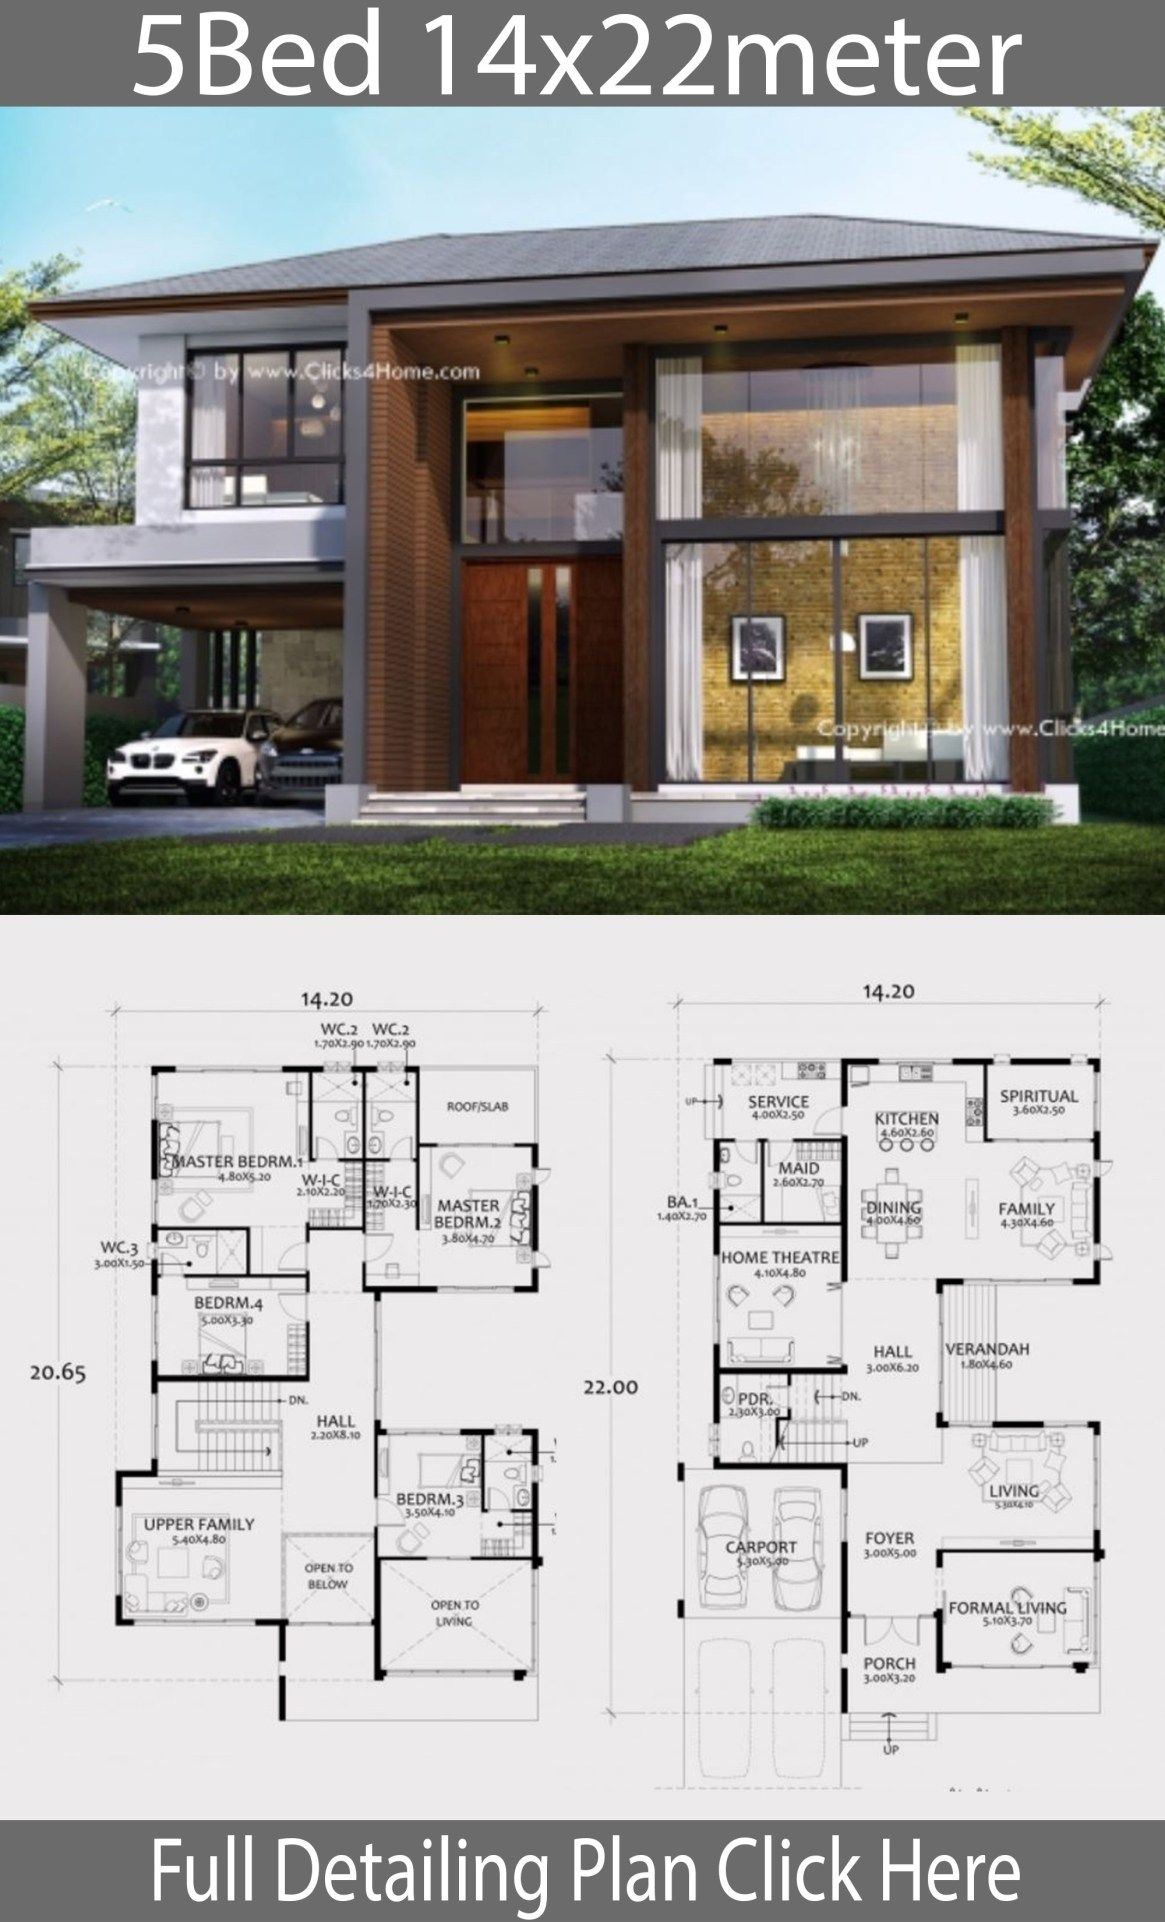 Home Design Plan 14x22m With 5 Bedrooms Home Design With Plansearch Architecture Model House Model House Plan Architectural House Plans